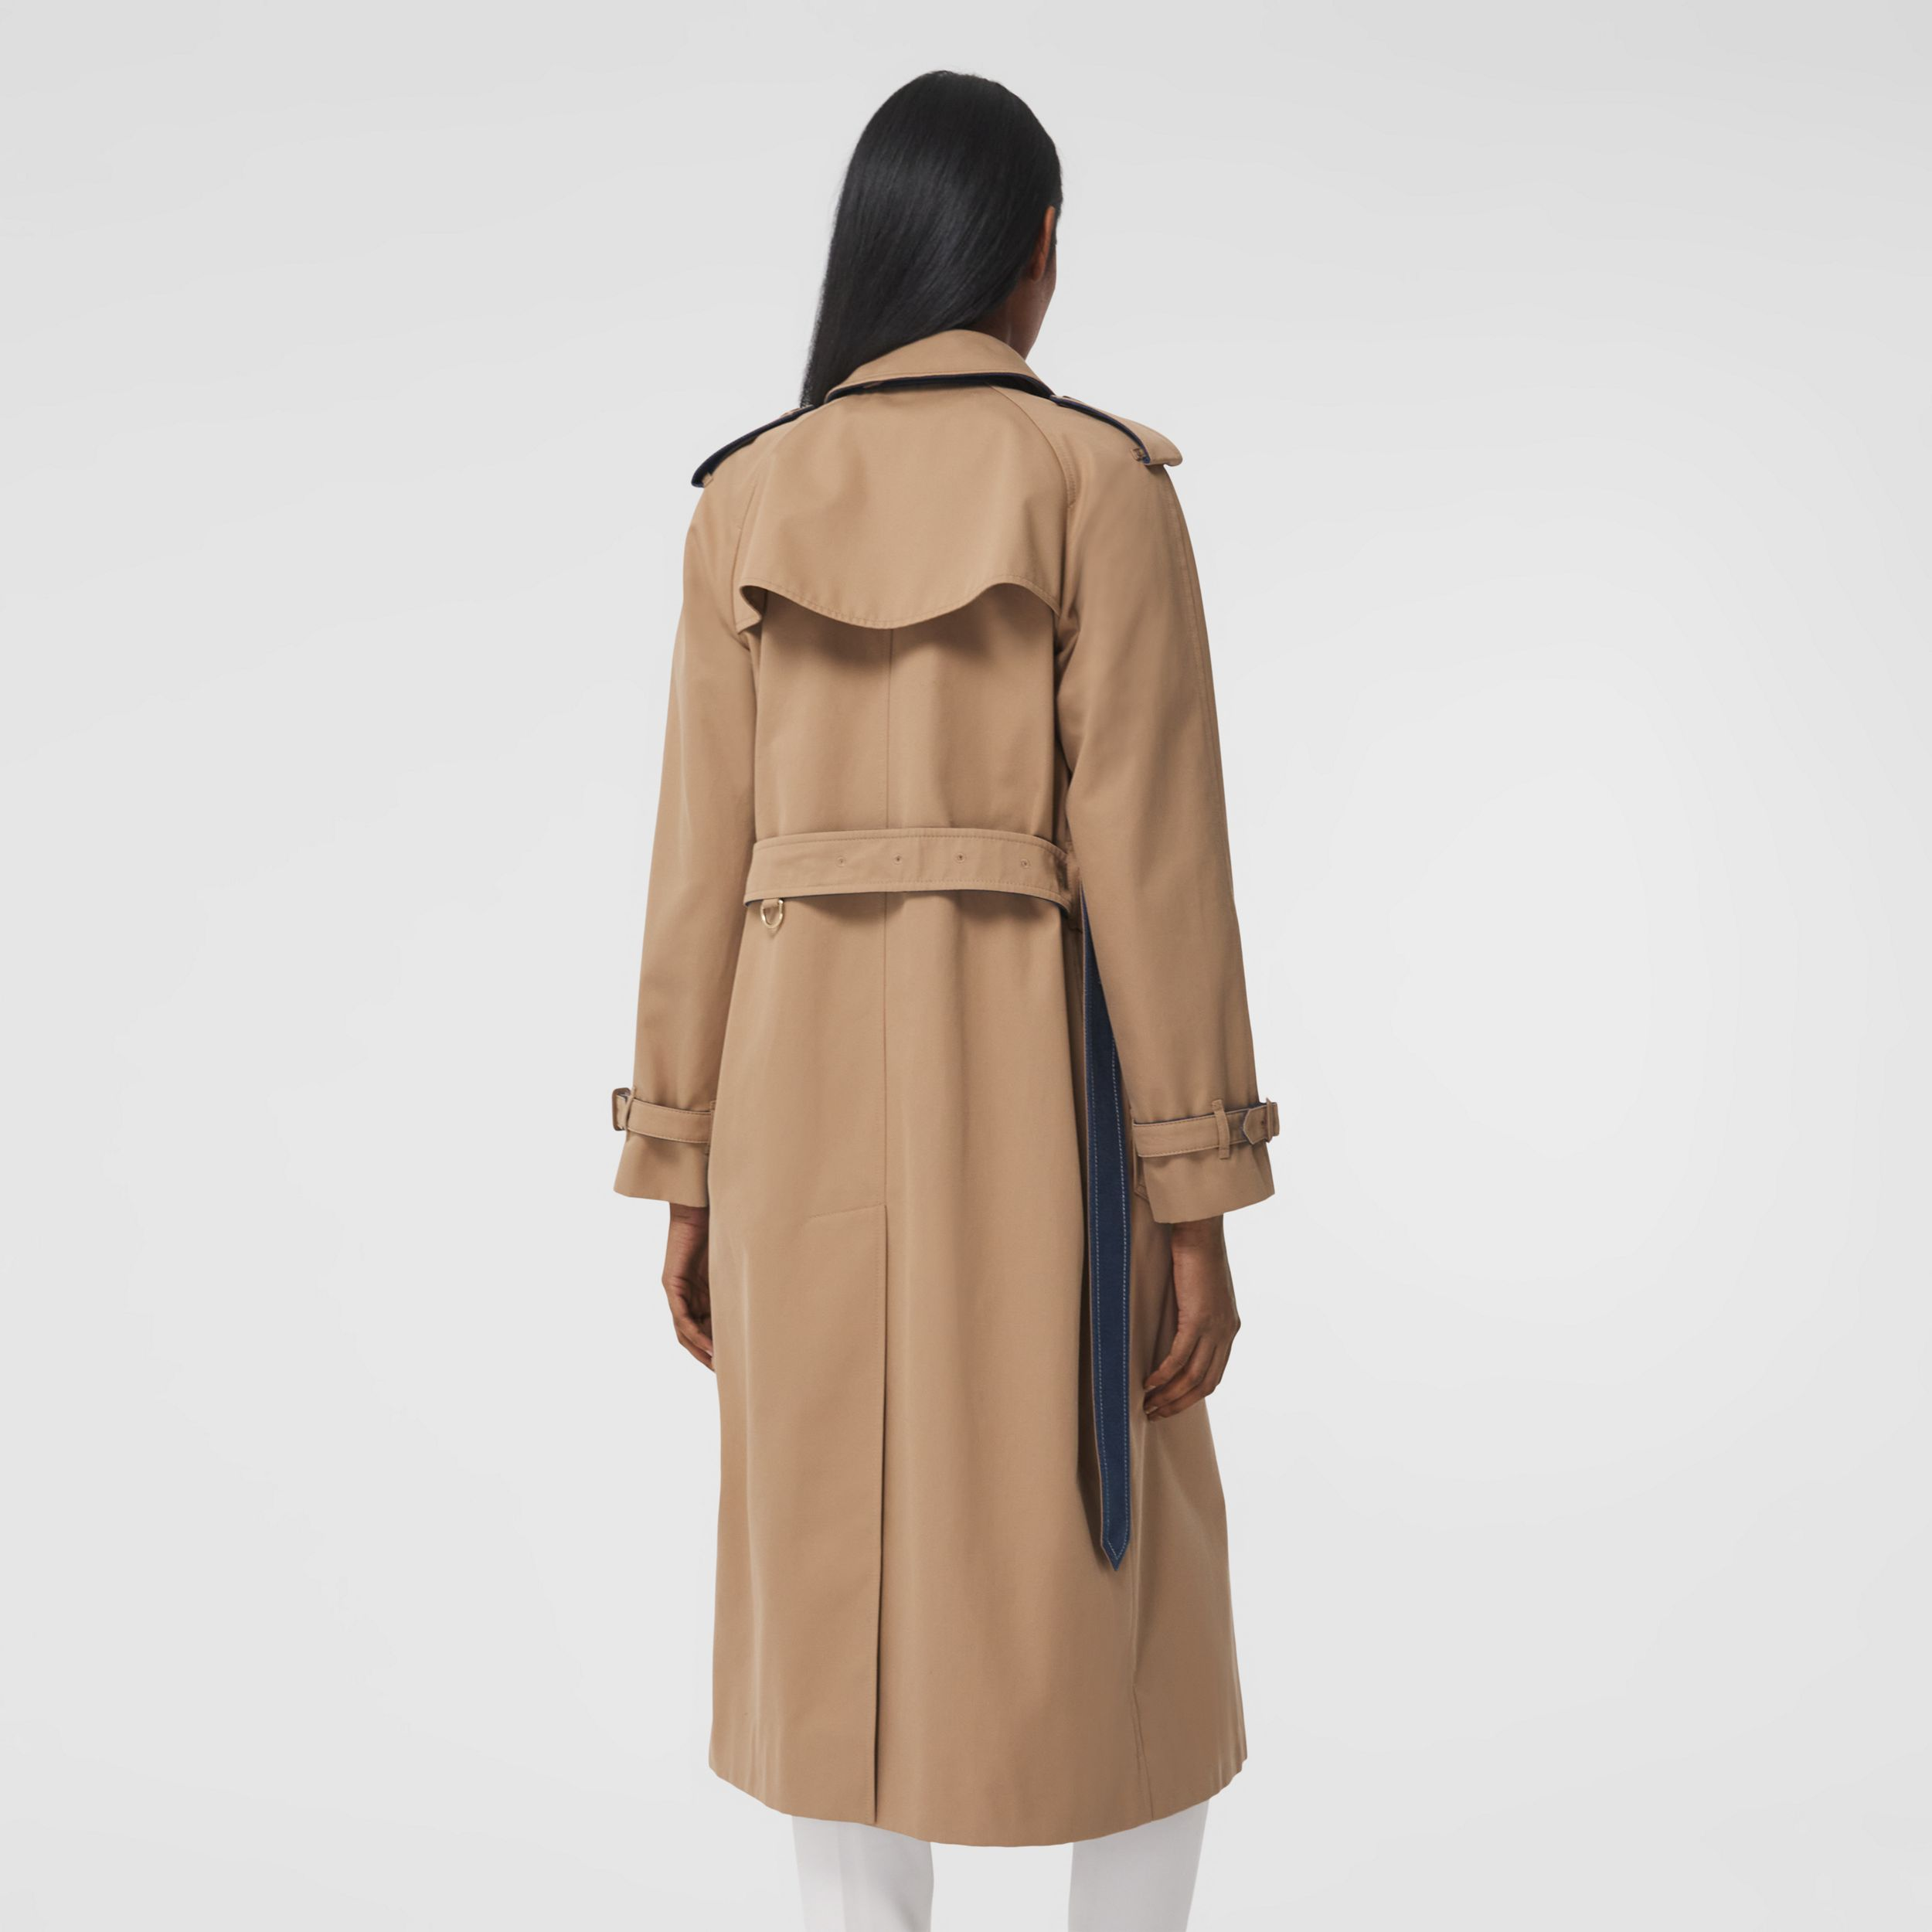 Denim Detail Cotton Gabardine Trench Coat in Camel - Women | Burberry - 3